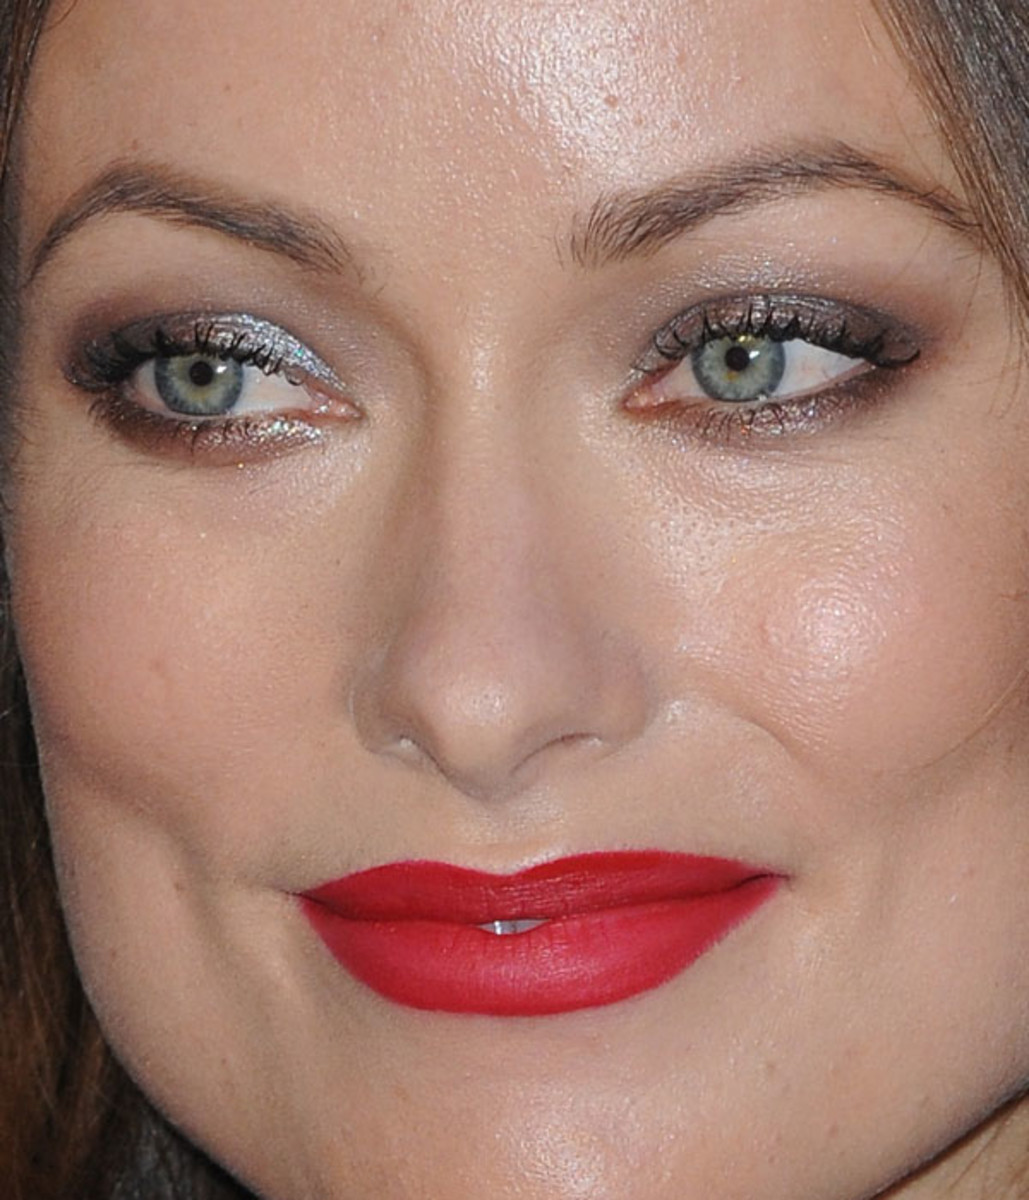 Olivia Wilde - Rush world premiere, London, September 2013 (close-up)